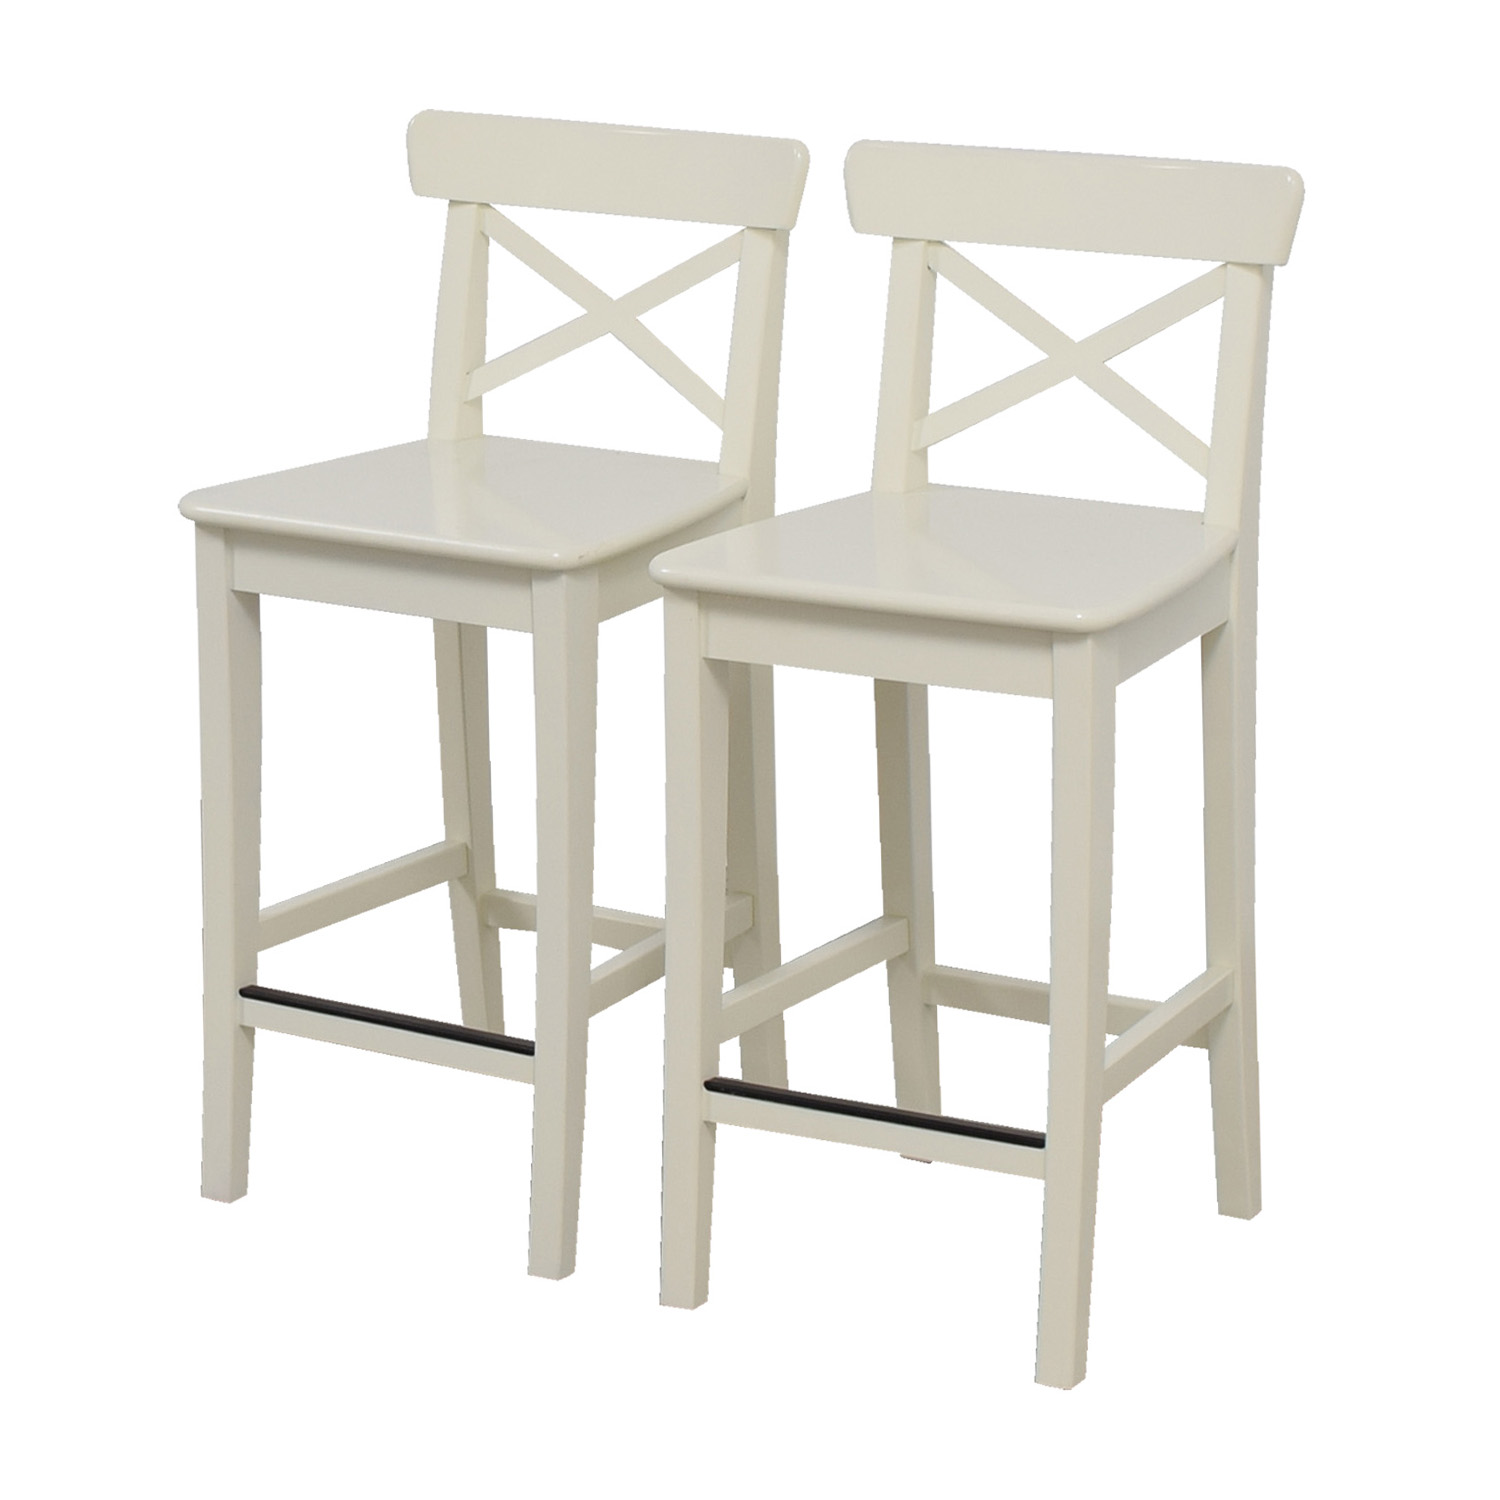 63 off ikea ikea white bar stools chairs. Black Bedroom Furniture Sets. Home Design Ideas